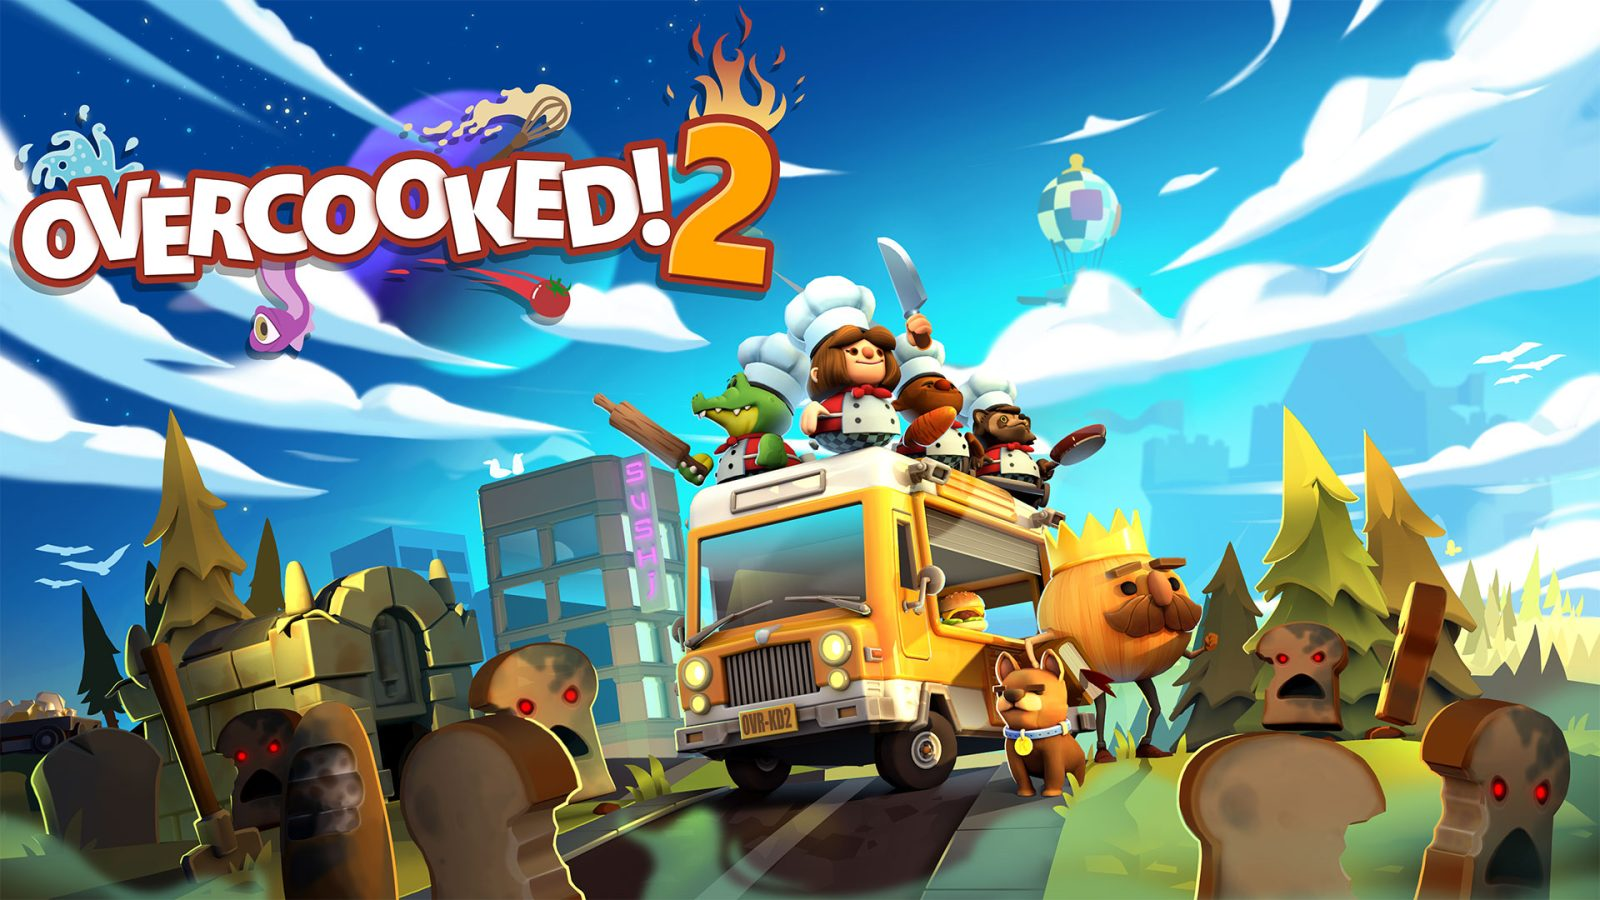 Today S Best Game Deals Overcooked 2 For Switch 19 Crash